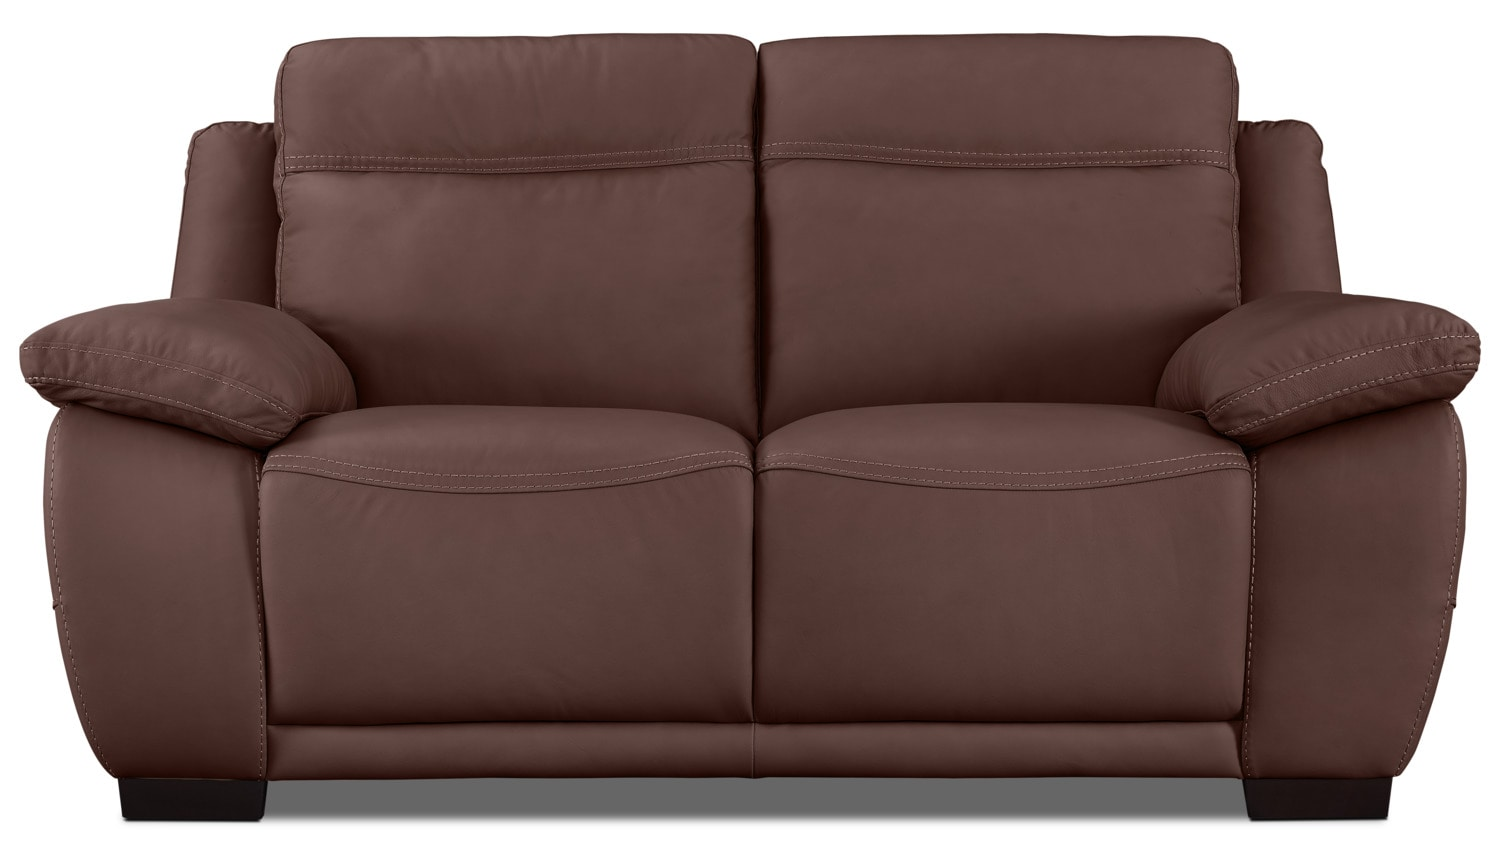 Living Room Furniture - Natuzzi Editions B875 Genuine Leather Loveseat – Chestnut